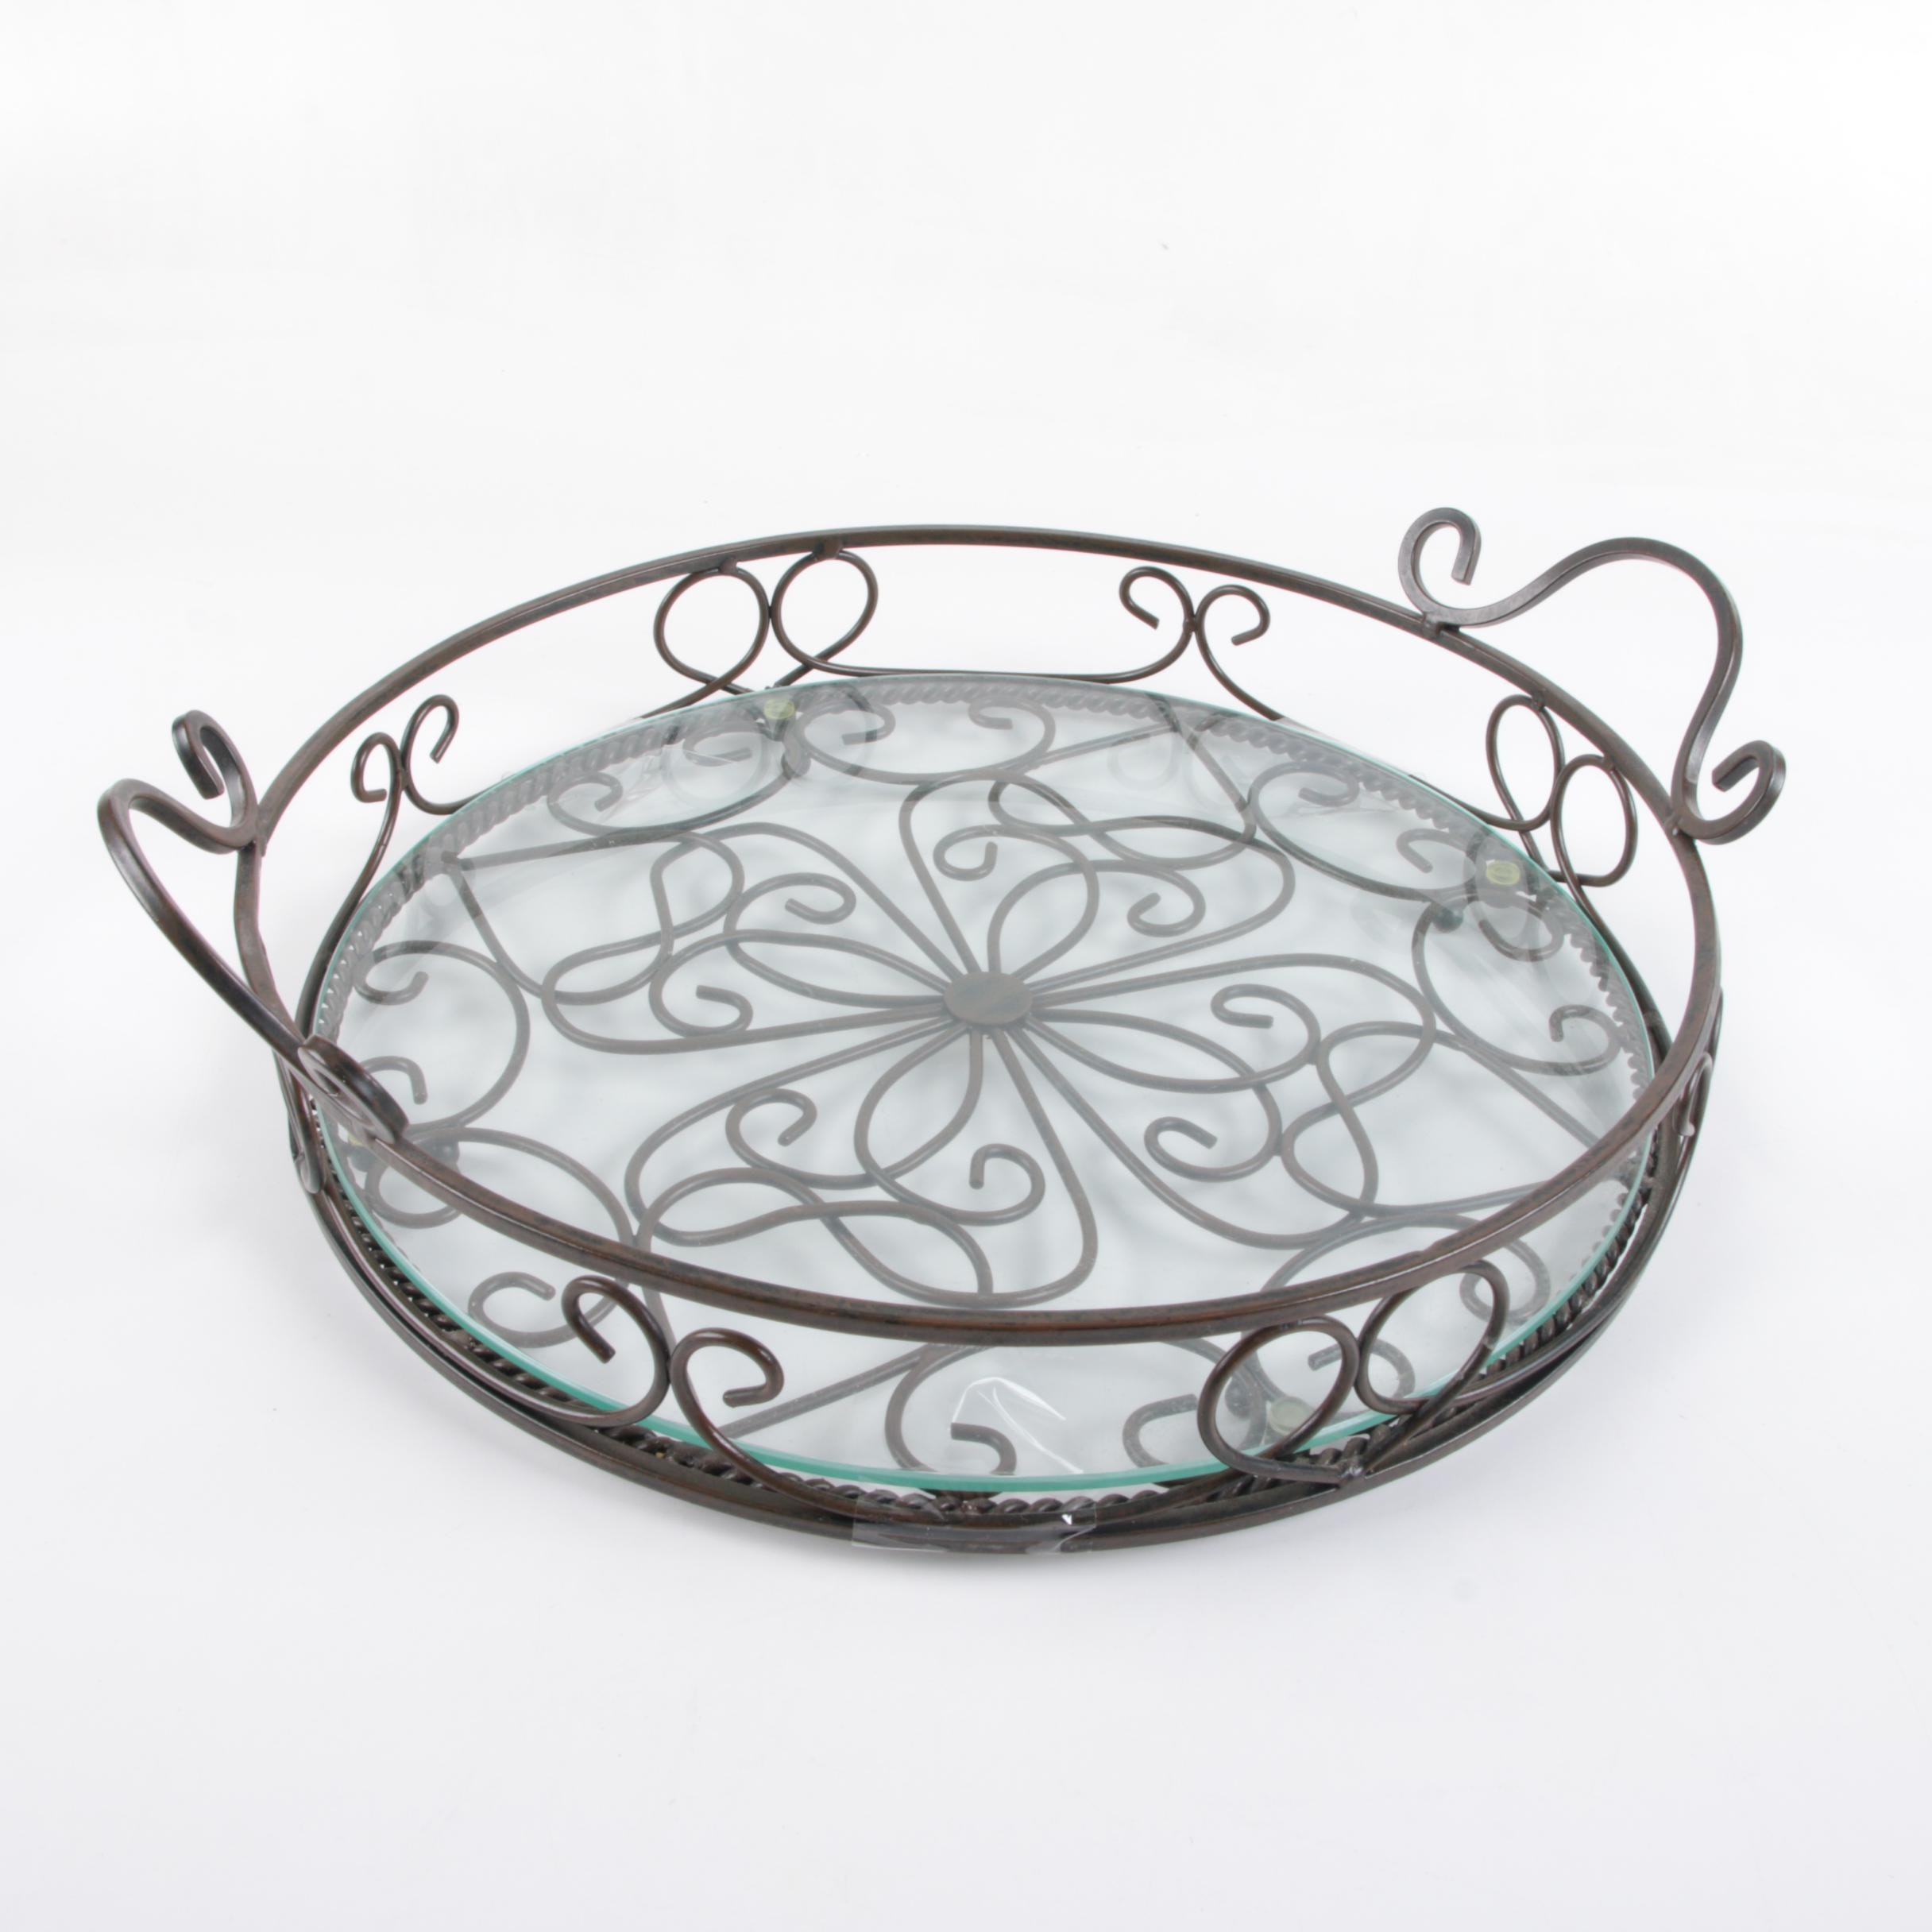 Scrolled Metal and Glass Tray